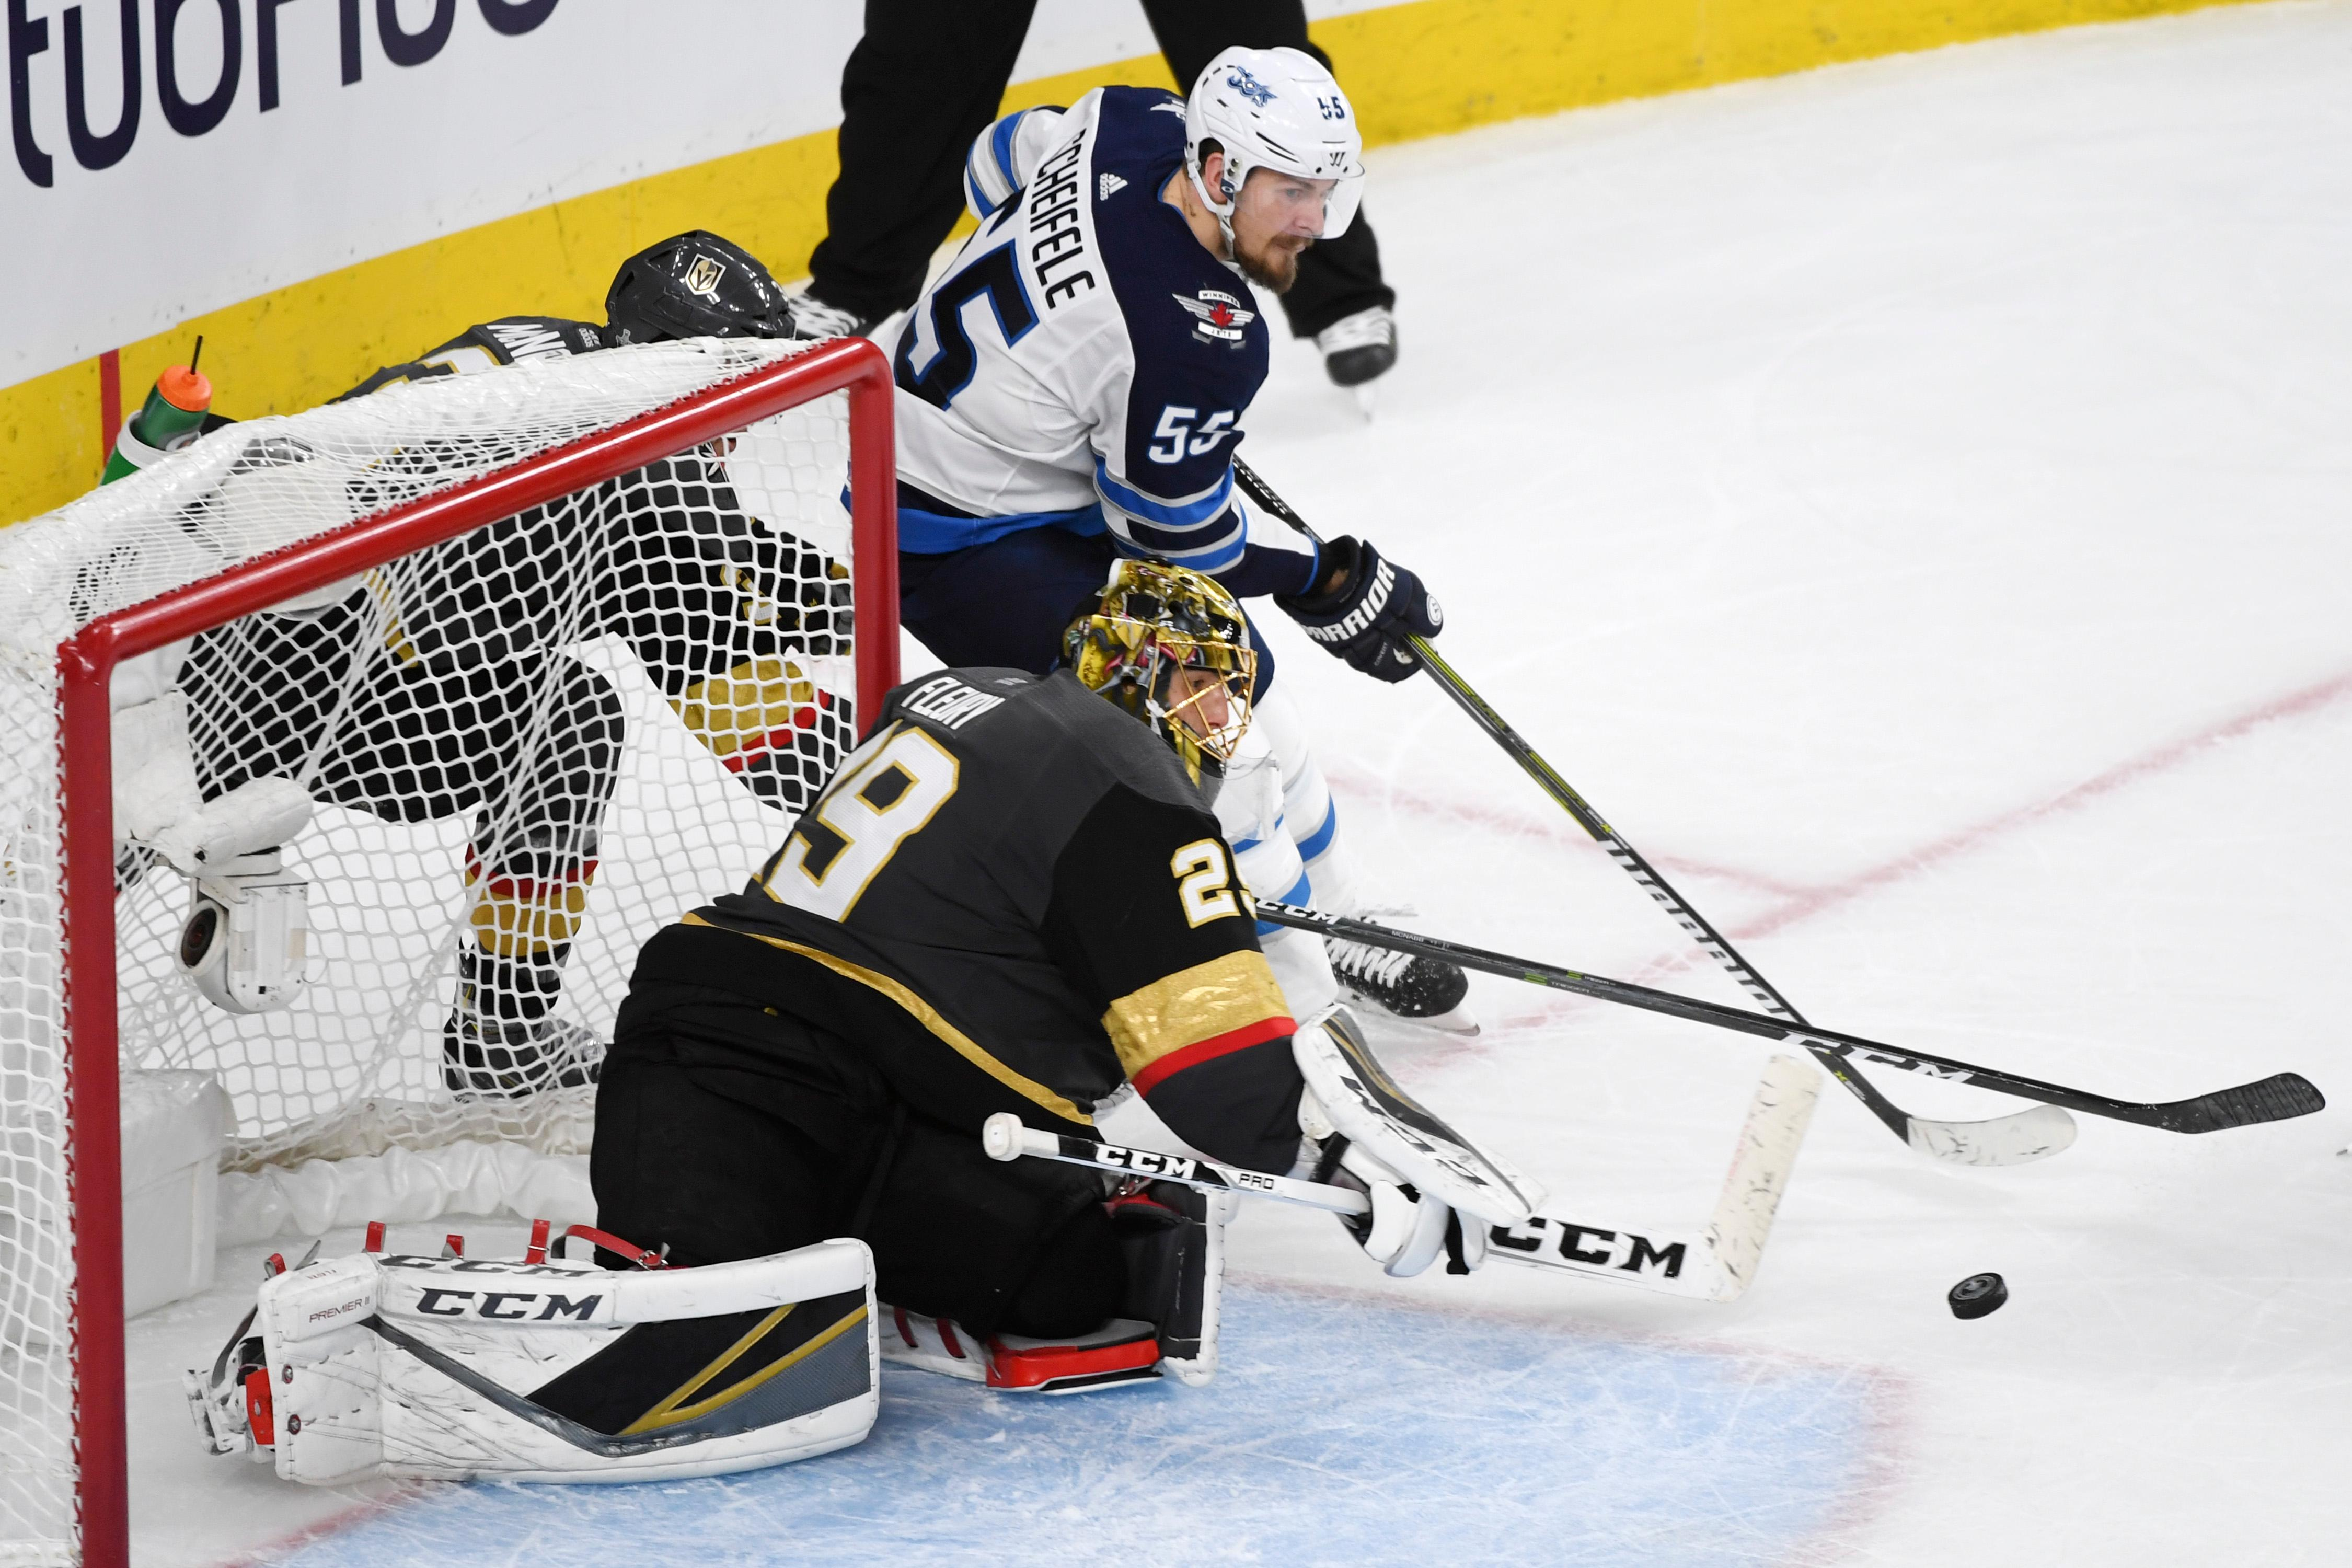 Vegas Golden Knights goaltender Marc-Andre Fleury (29) stops a shot by Winnipeg Jets center Mark Scheifele (55) during Game 3 of their NHL hockey Western Conference Final game Wednesday, May 16, 2018, at T-Mobile Arena. The Golden Knights won 4-2 to take a 2-1 lead in the series. CREDIT: Sam Morris/Las Vegas News Bureau